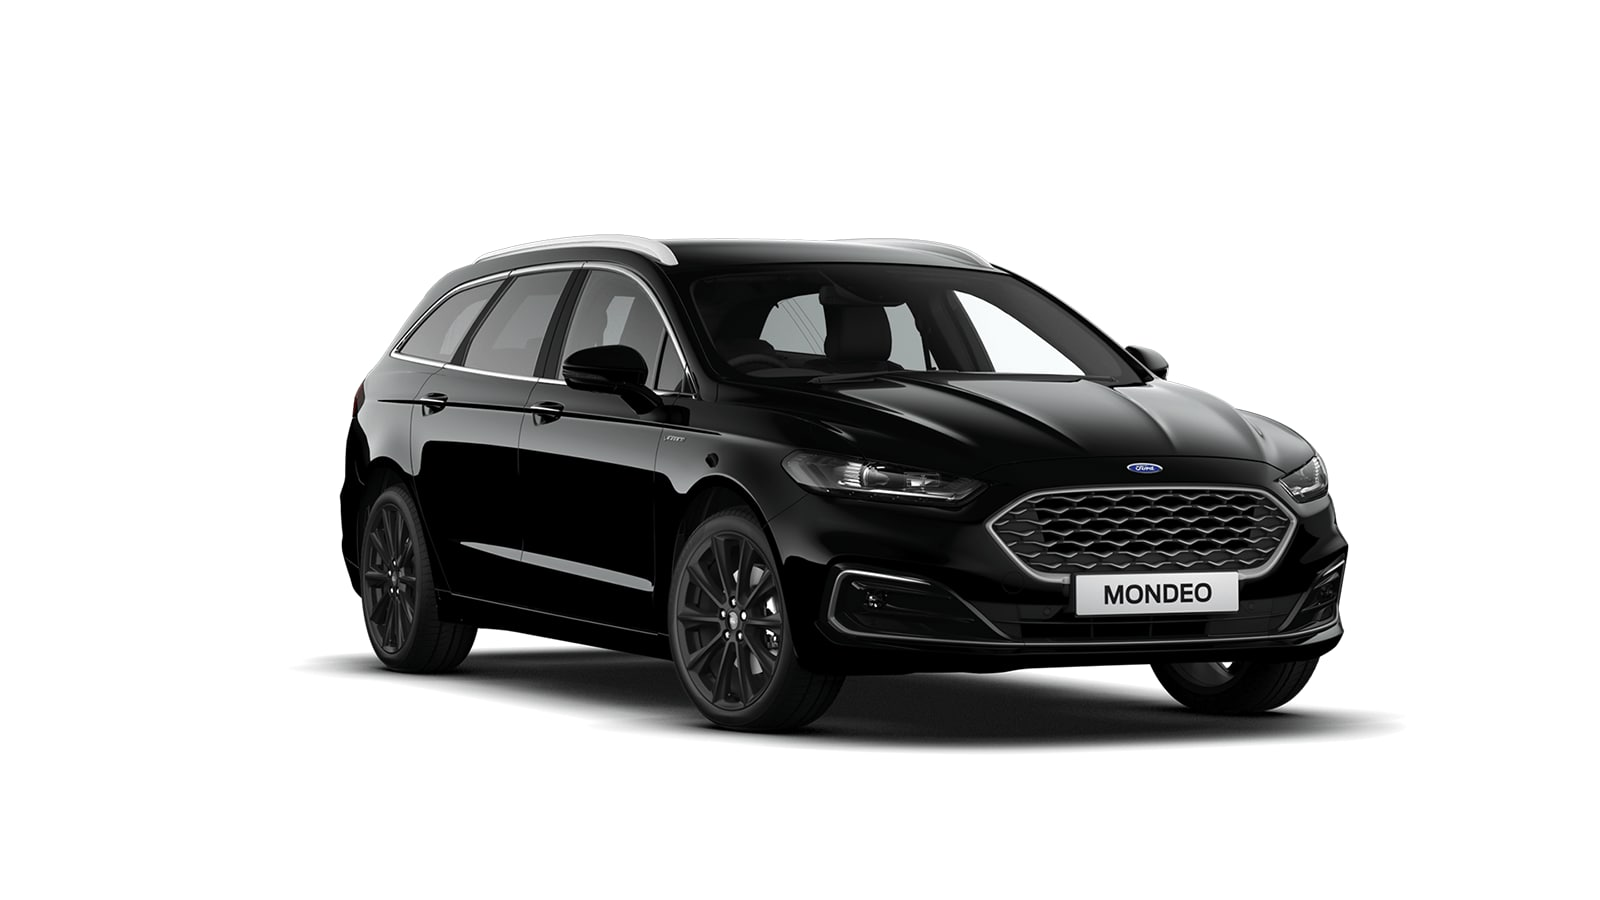 New Ford Mondeo Hybrid at Browne & Day